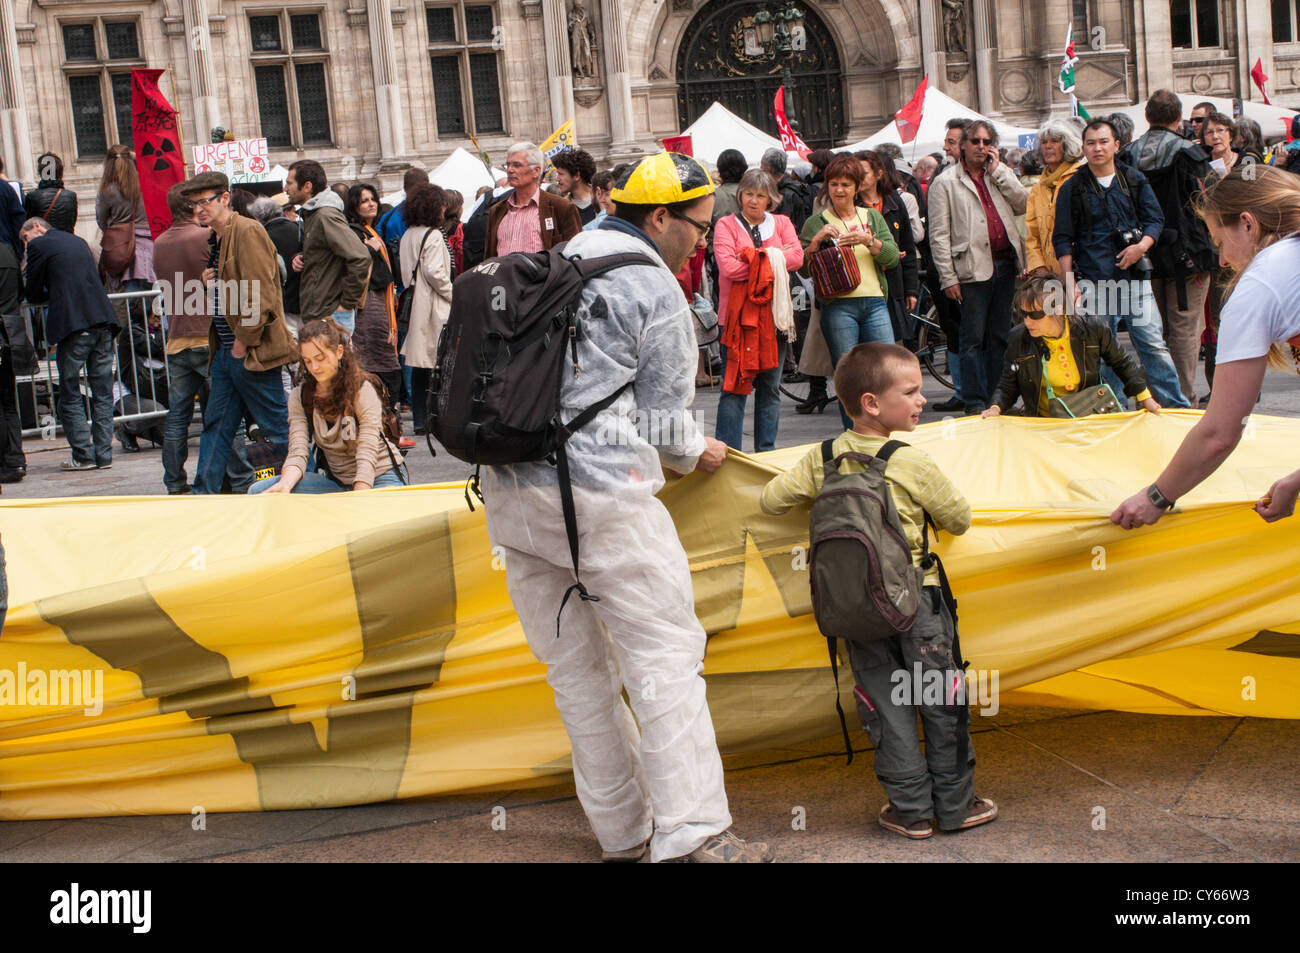 French Demonstration Against Nuclear Power. - Stock Image